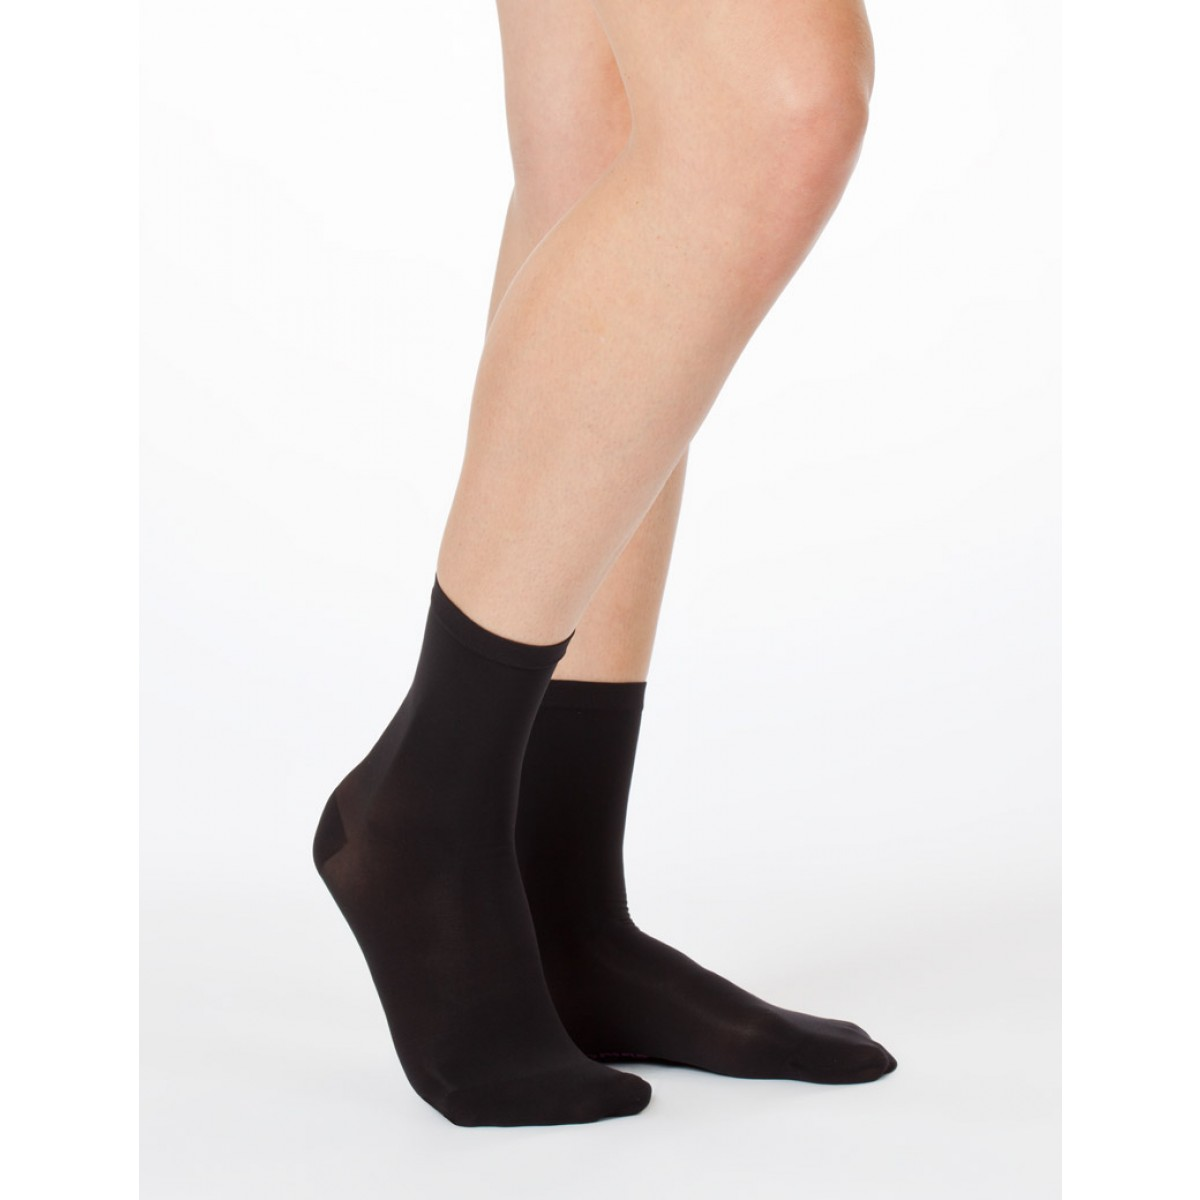 ITEM m6 Socks Translucent Black-35